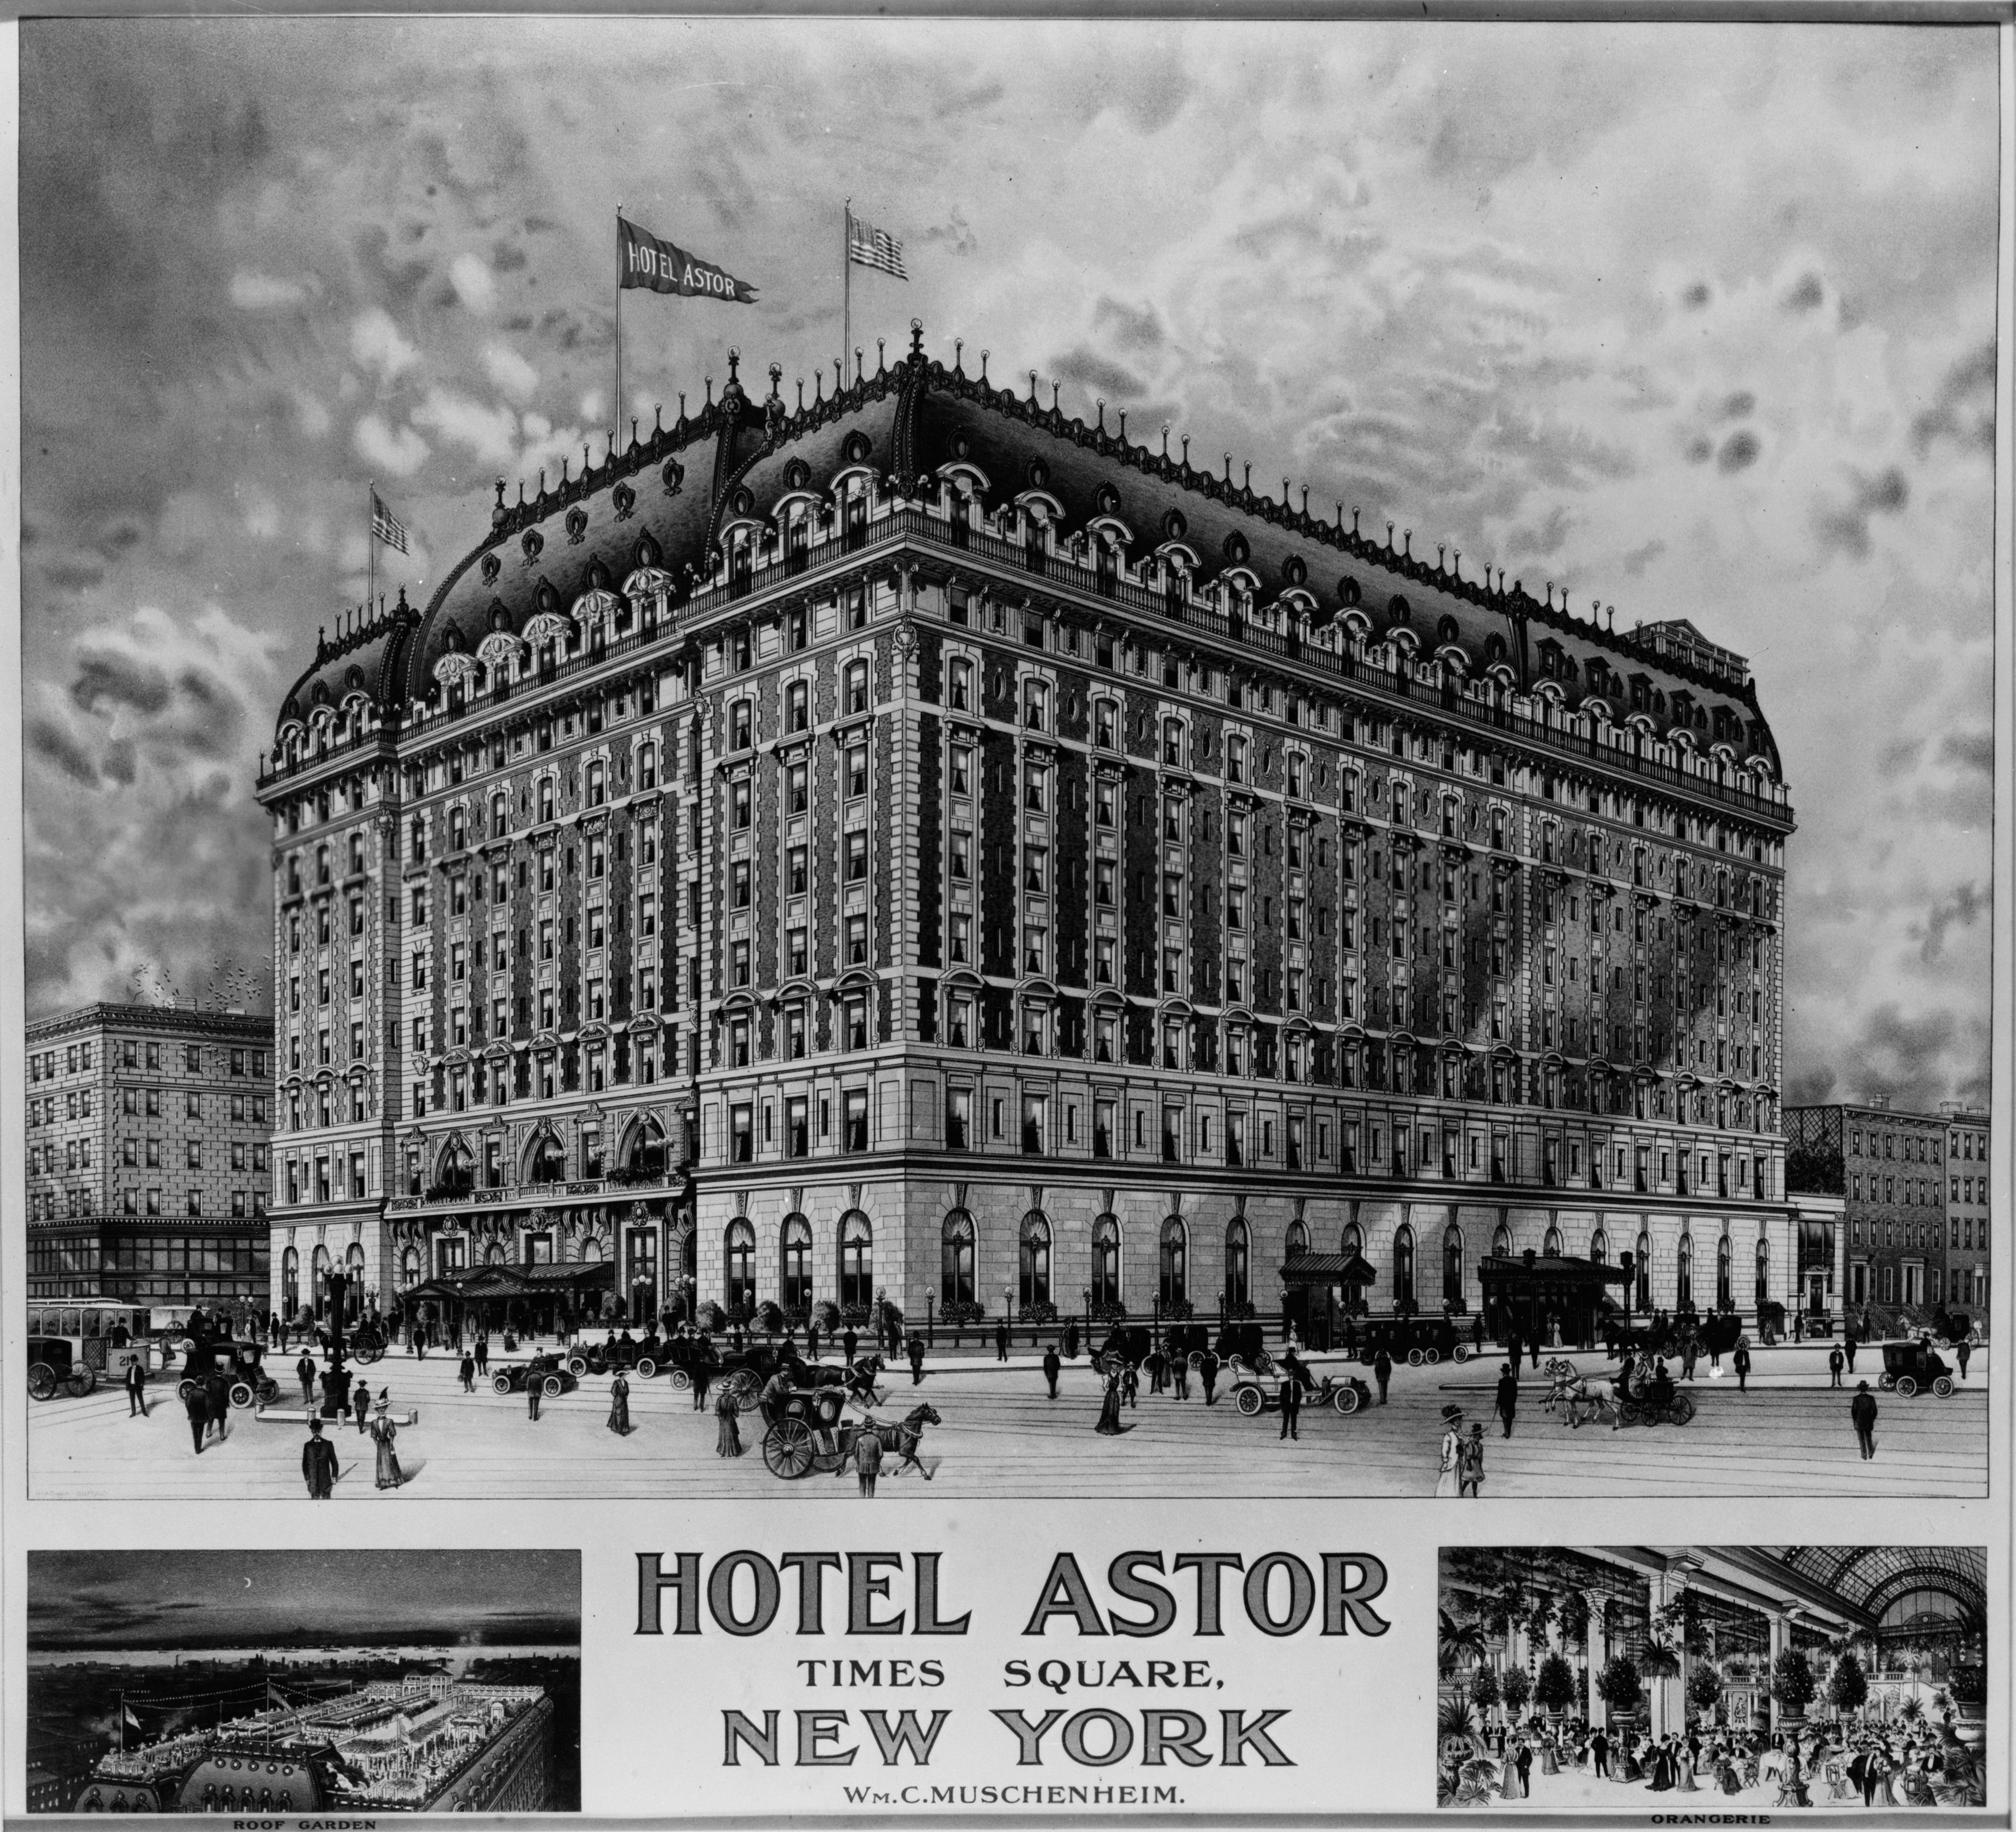 Hotel astor new york city wikiwand for Hotel new astoria